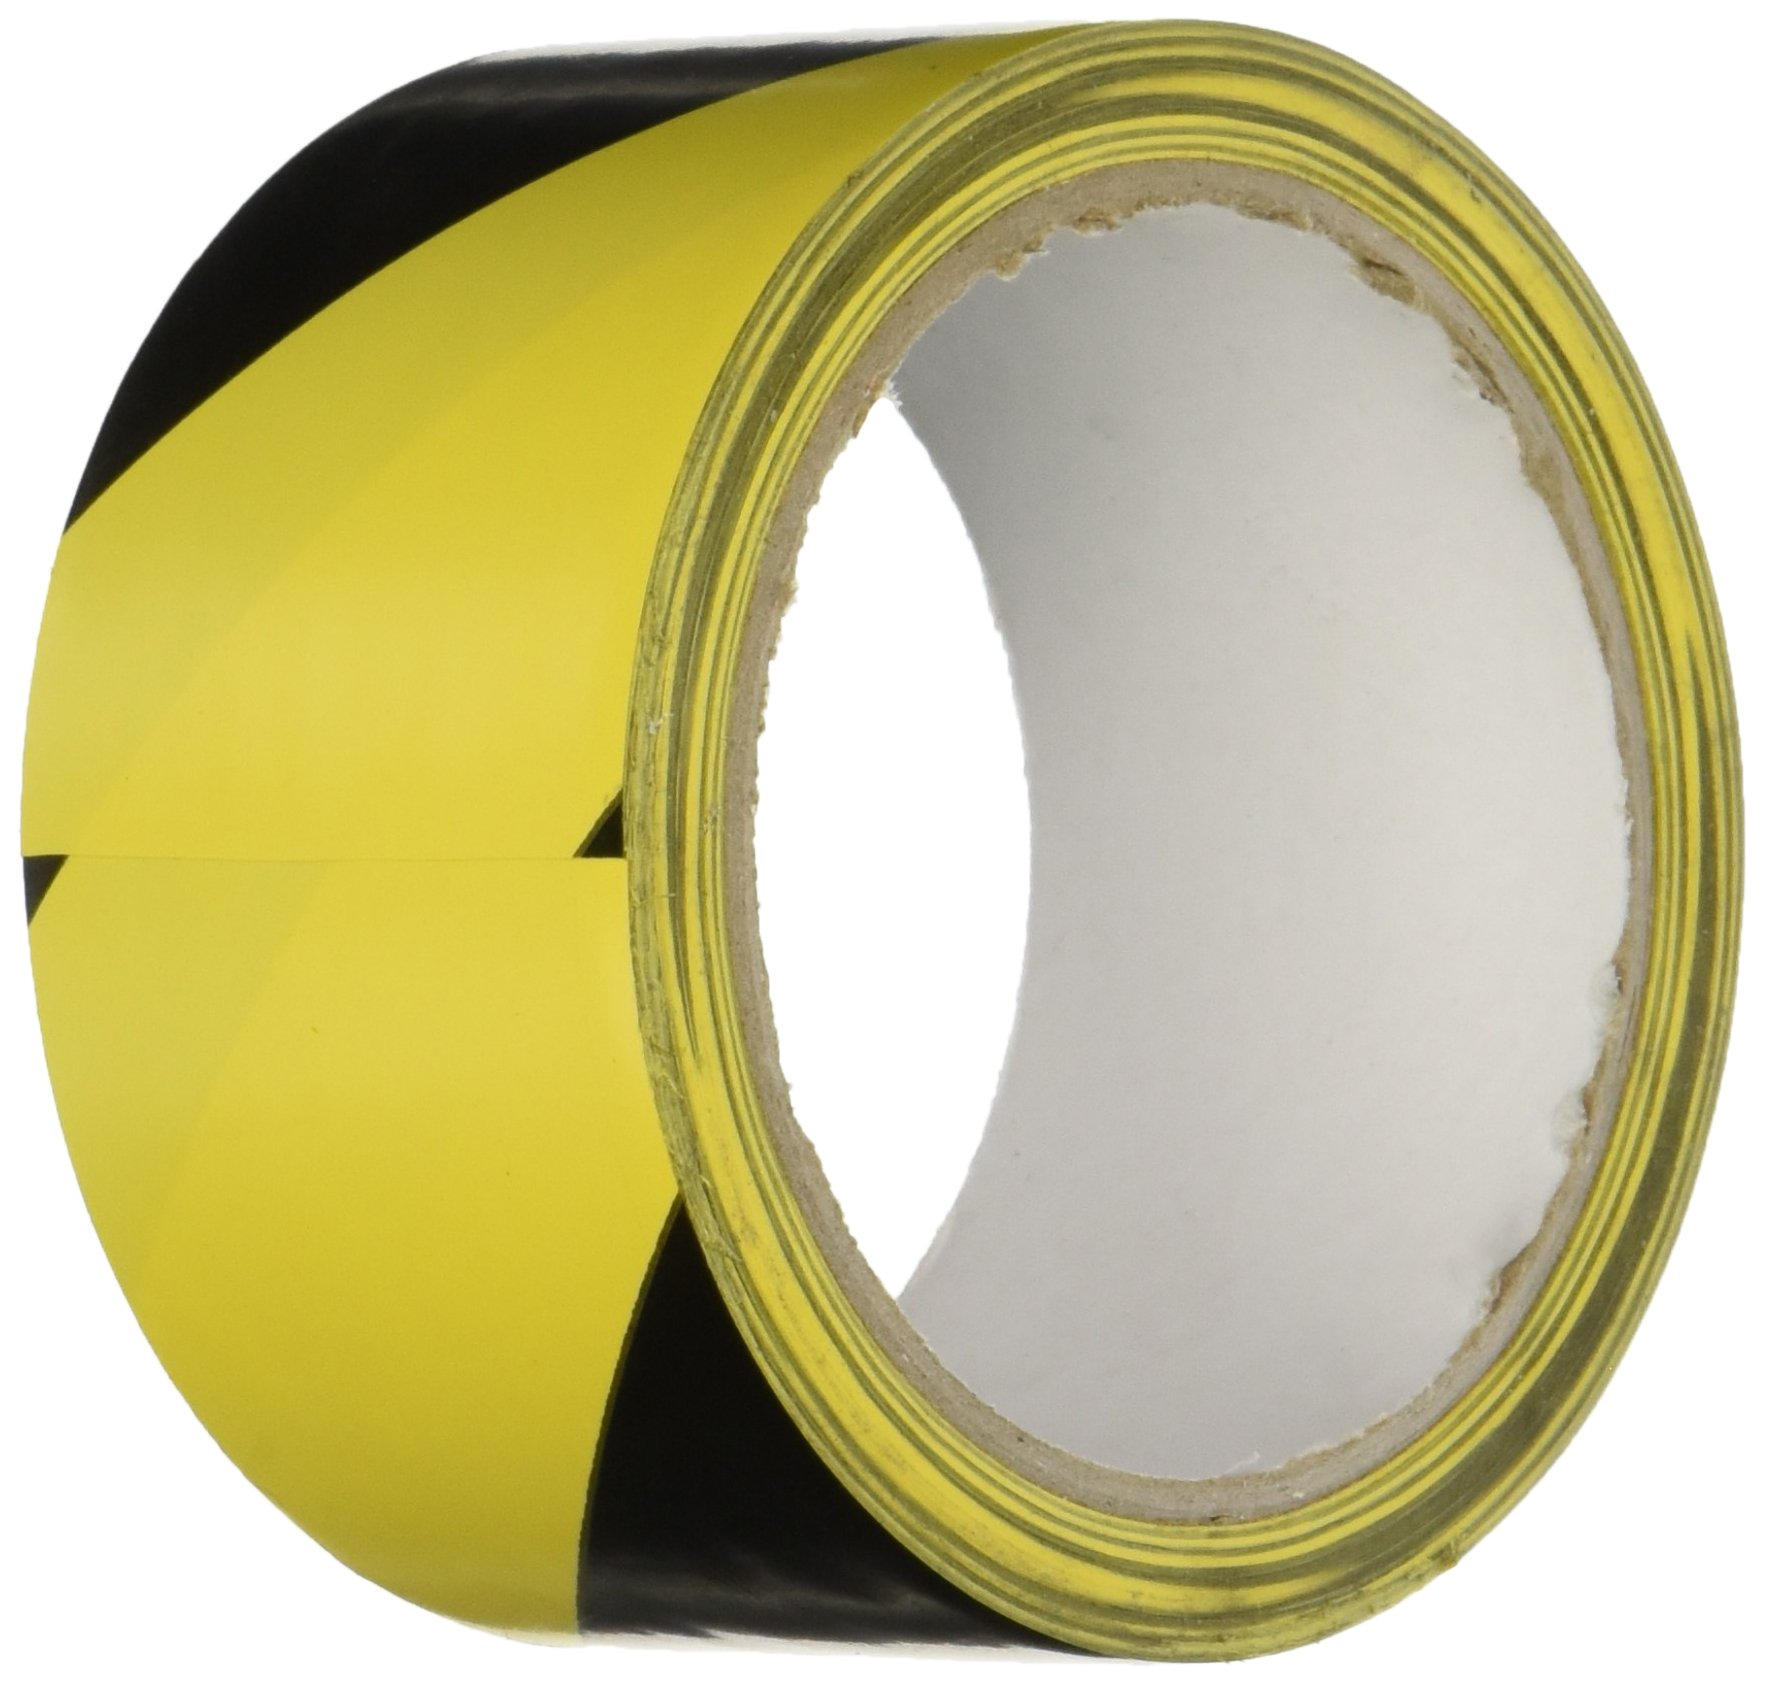 IRWIN Tools Floor Tape, Yellow / Black, 2-inch by 54-foot (2034300)